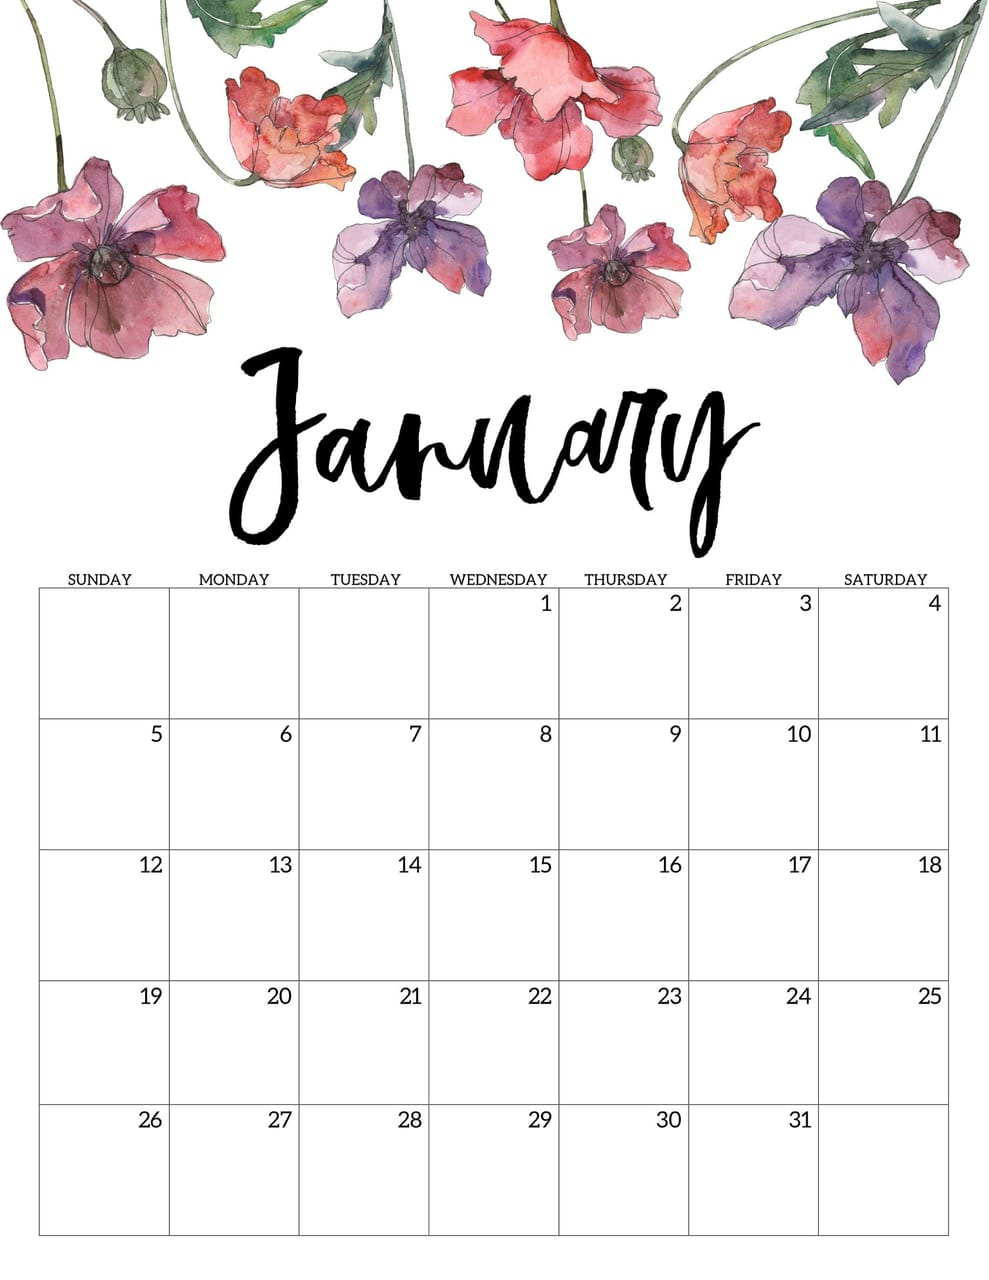 62+] January 2020 Calendar Wallpapers On Wallpapersafari intended for 123 Calendar January 2020